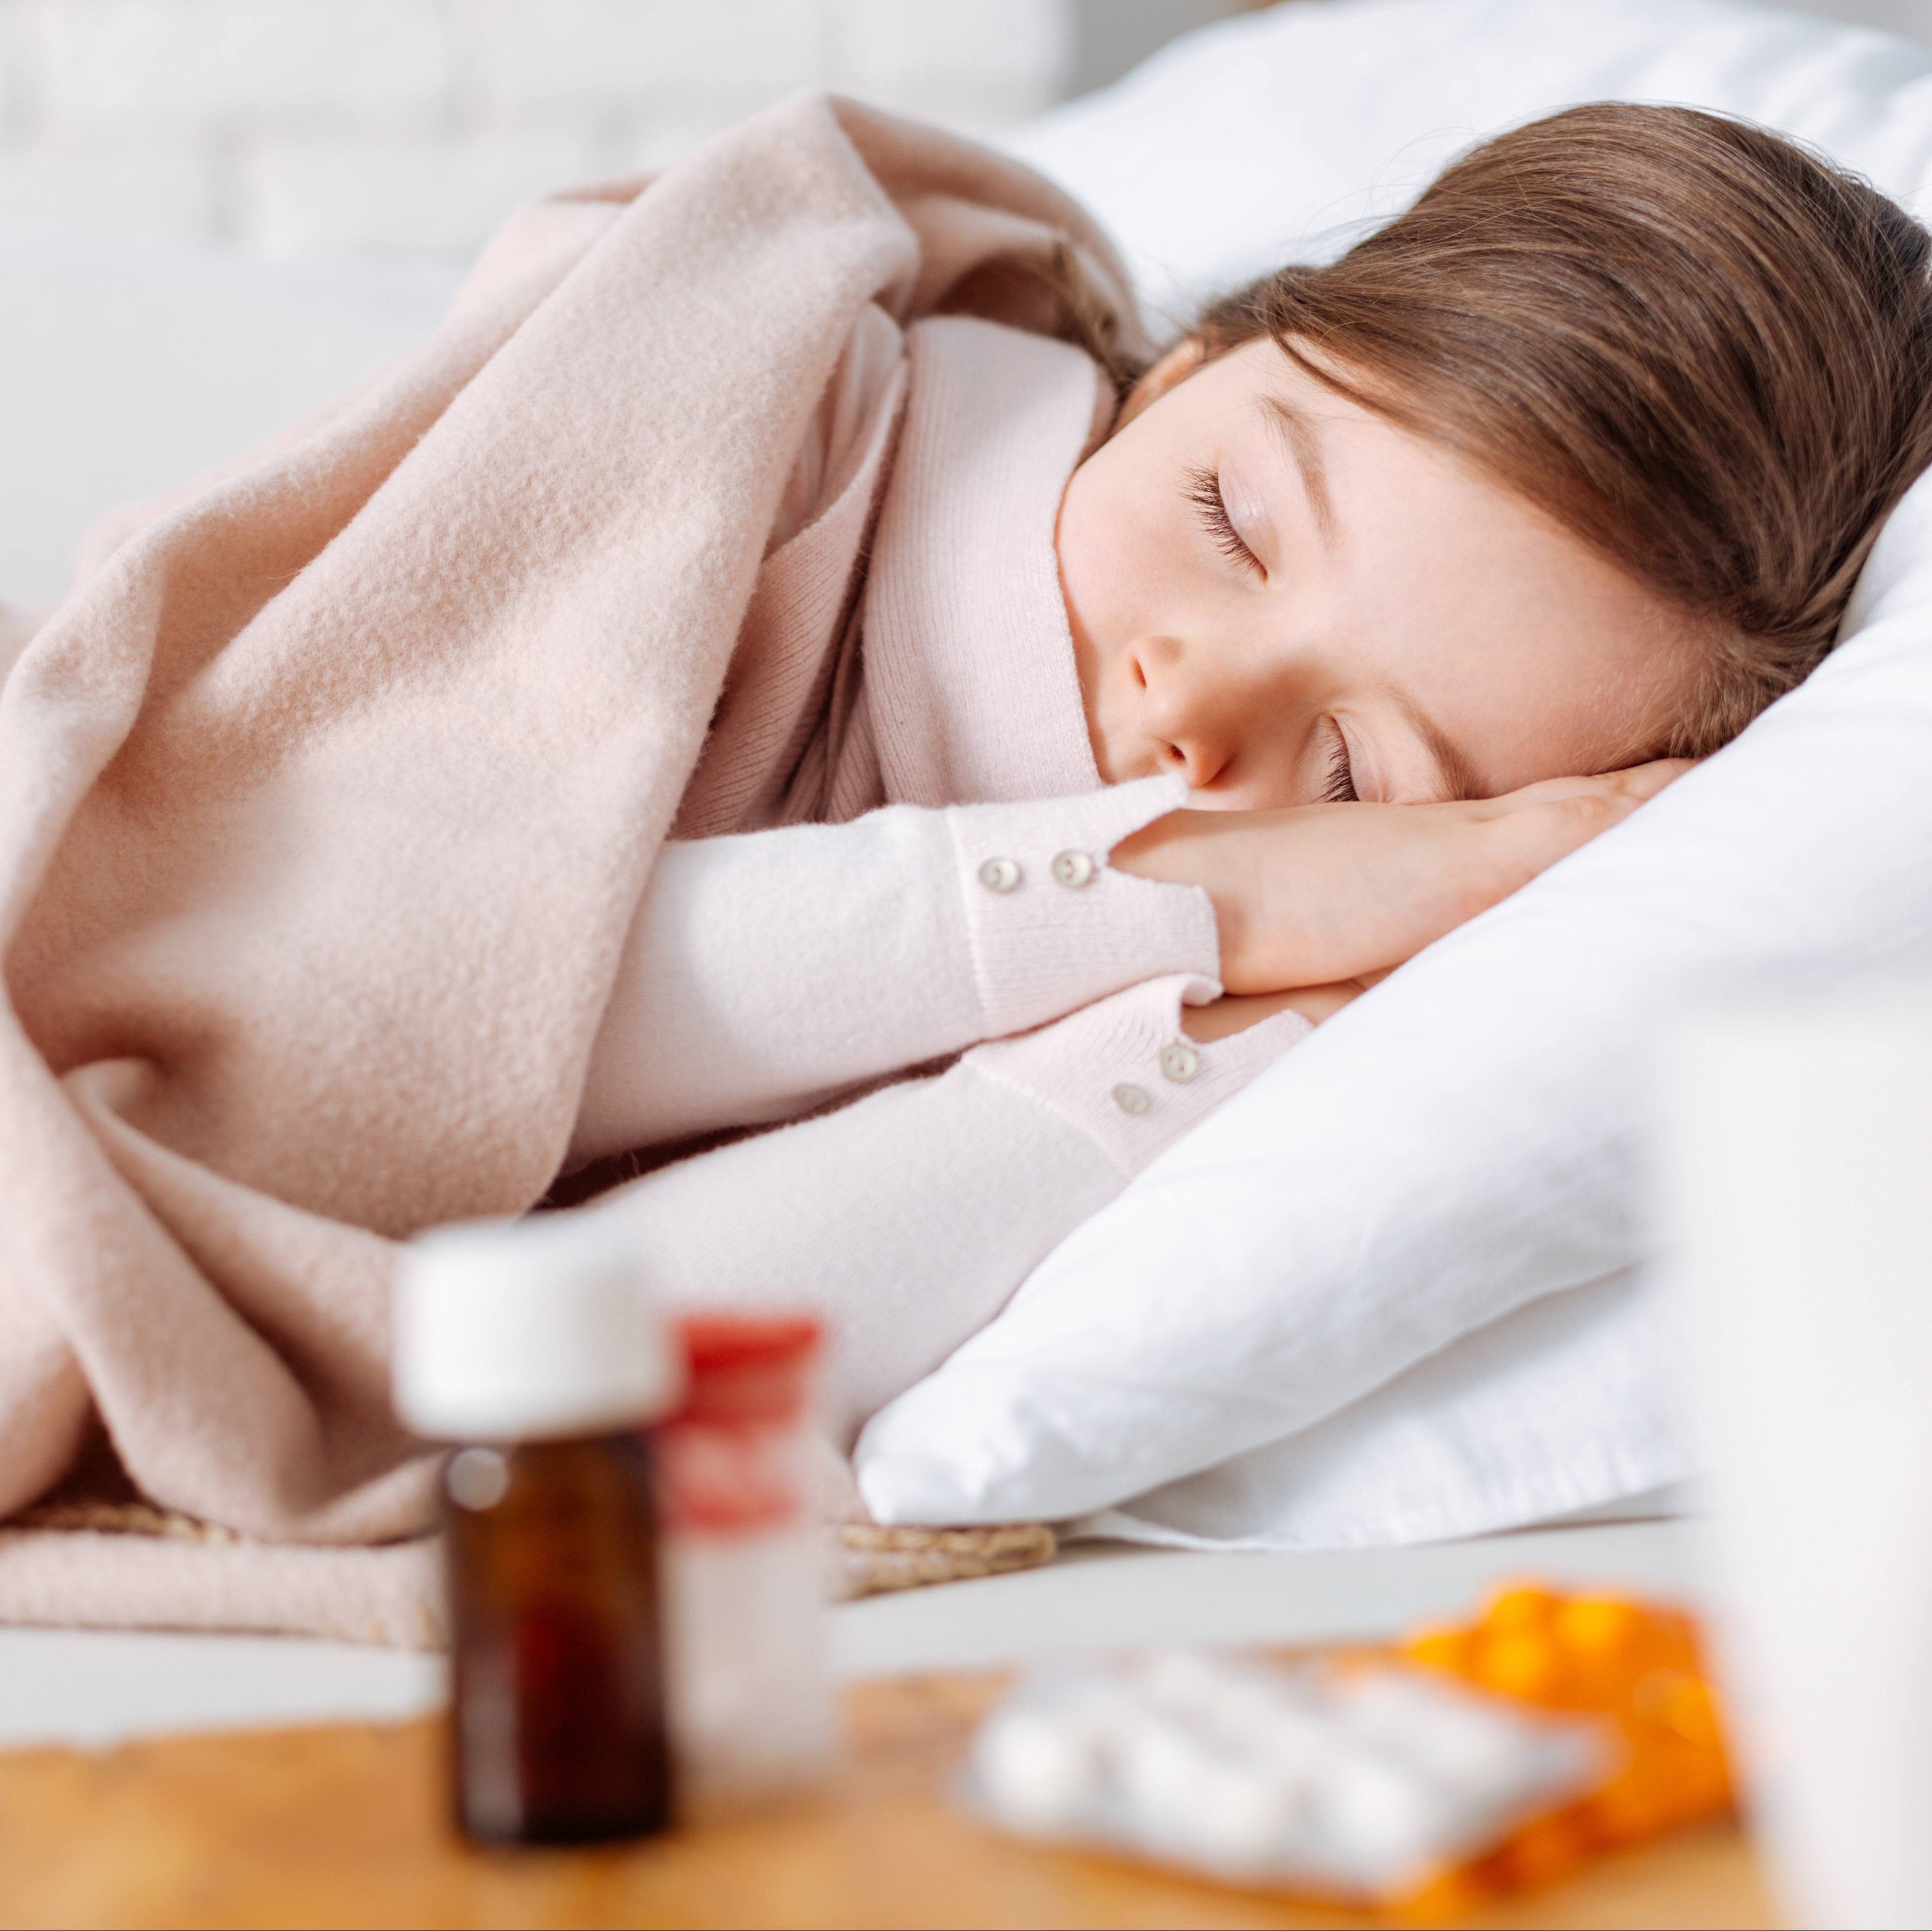 a little white school aged girl asleep in bed, covered in a blanket with medicine on a side table nearby, perhaps because she's sick and not feeling well with a cold or fever